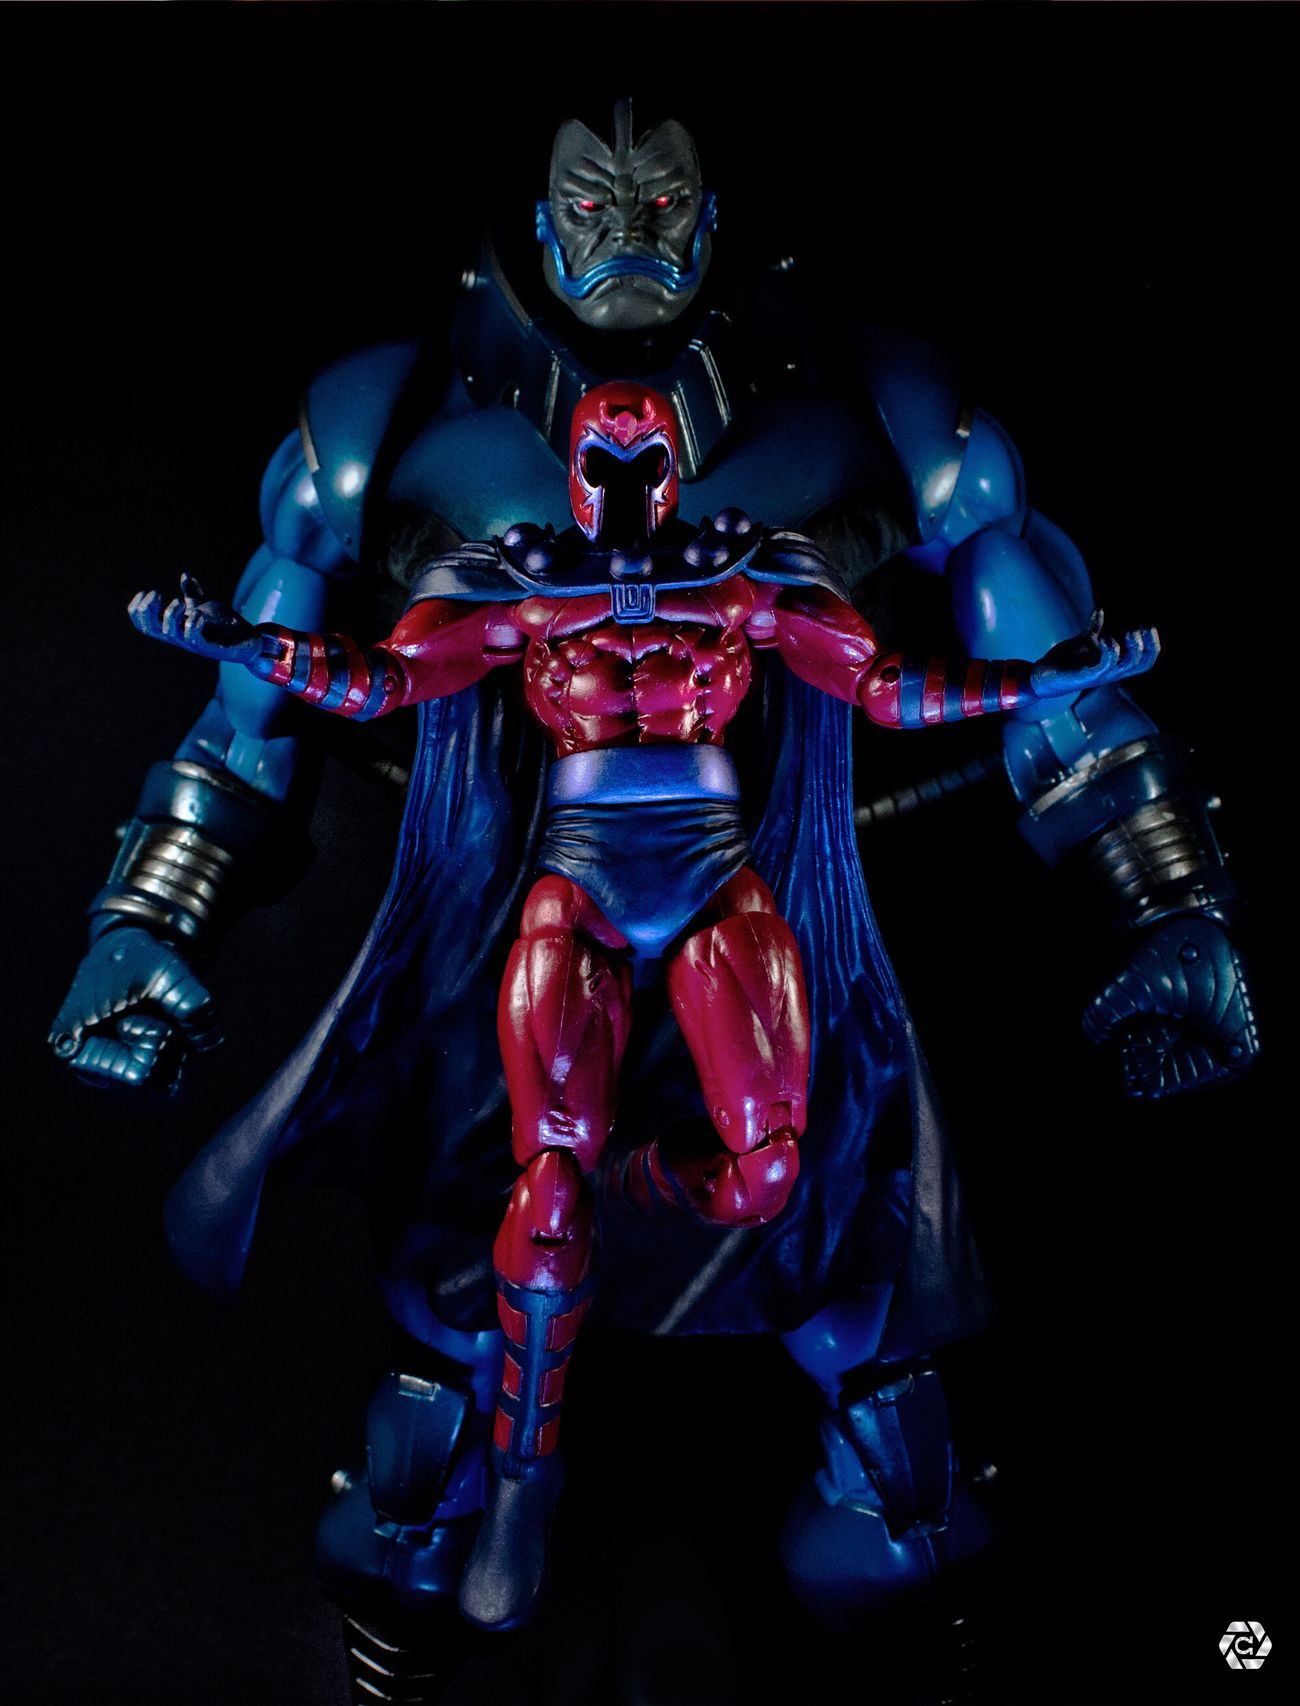 Marvellegends Marvel Xmen Magneto Apocalypse Marvelselect Toybiz